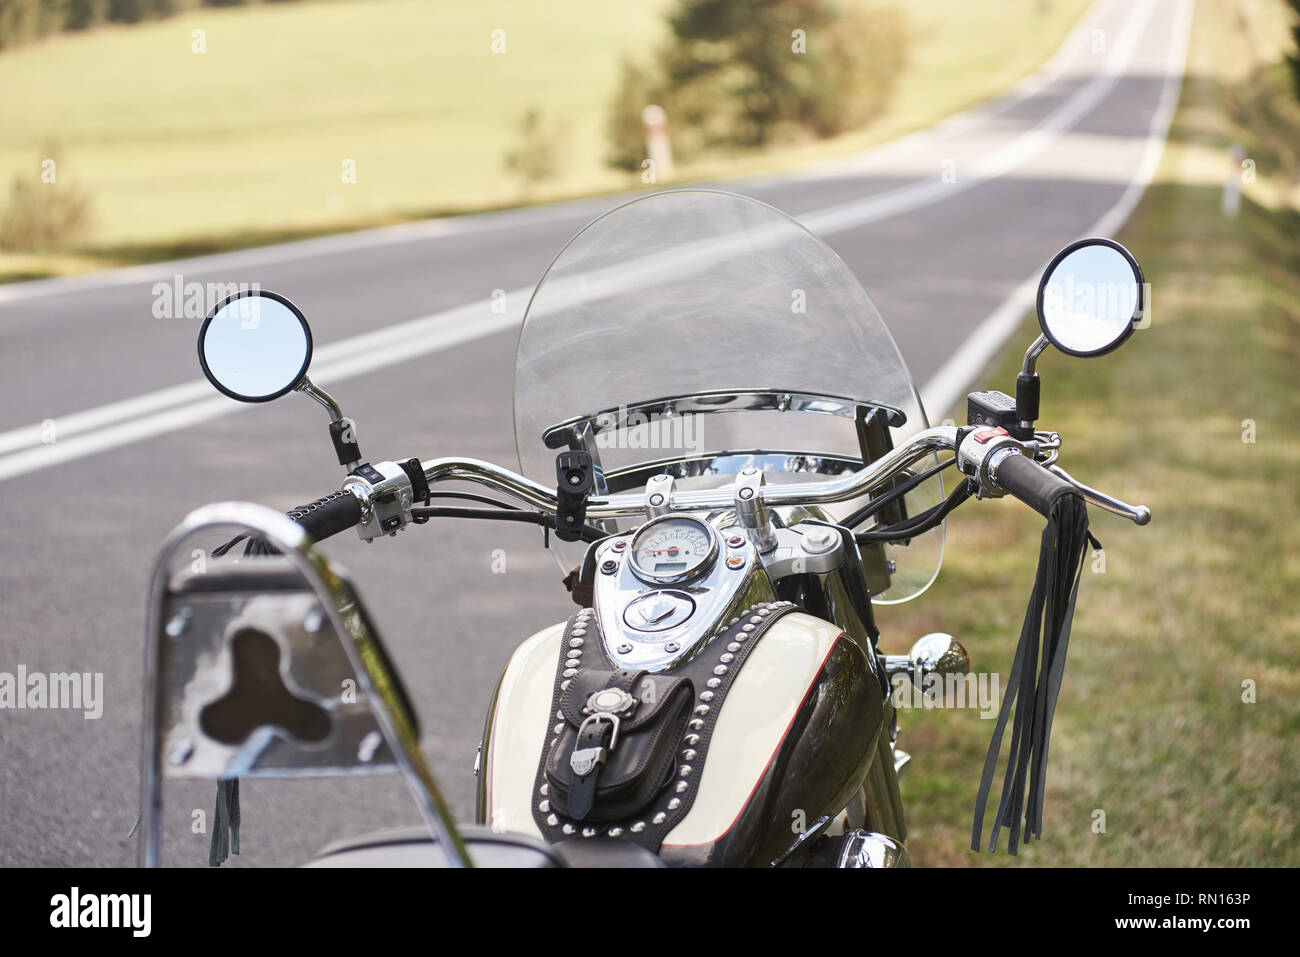 Detail of black shiny powerful motorcycle parked on roadside on blurred sunny outdoors background. Modern transportation technology, speed and long-distance traveling concept. - Stock Image